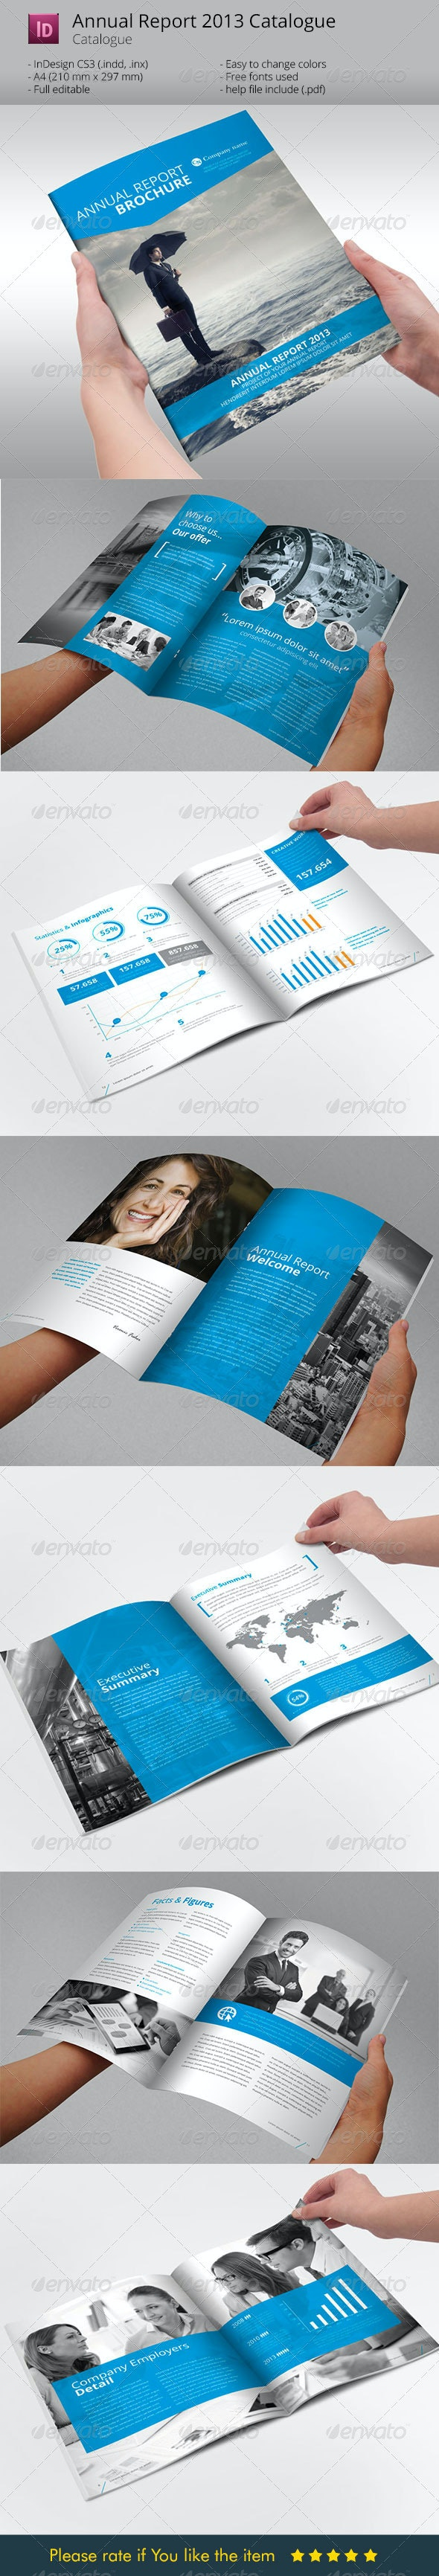 Annual Report  Brochure Indesign Template - Corporate Brochures